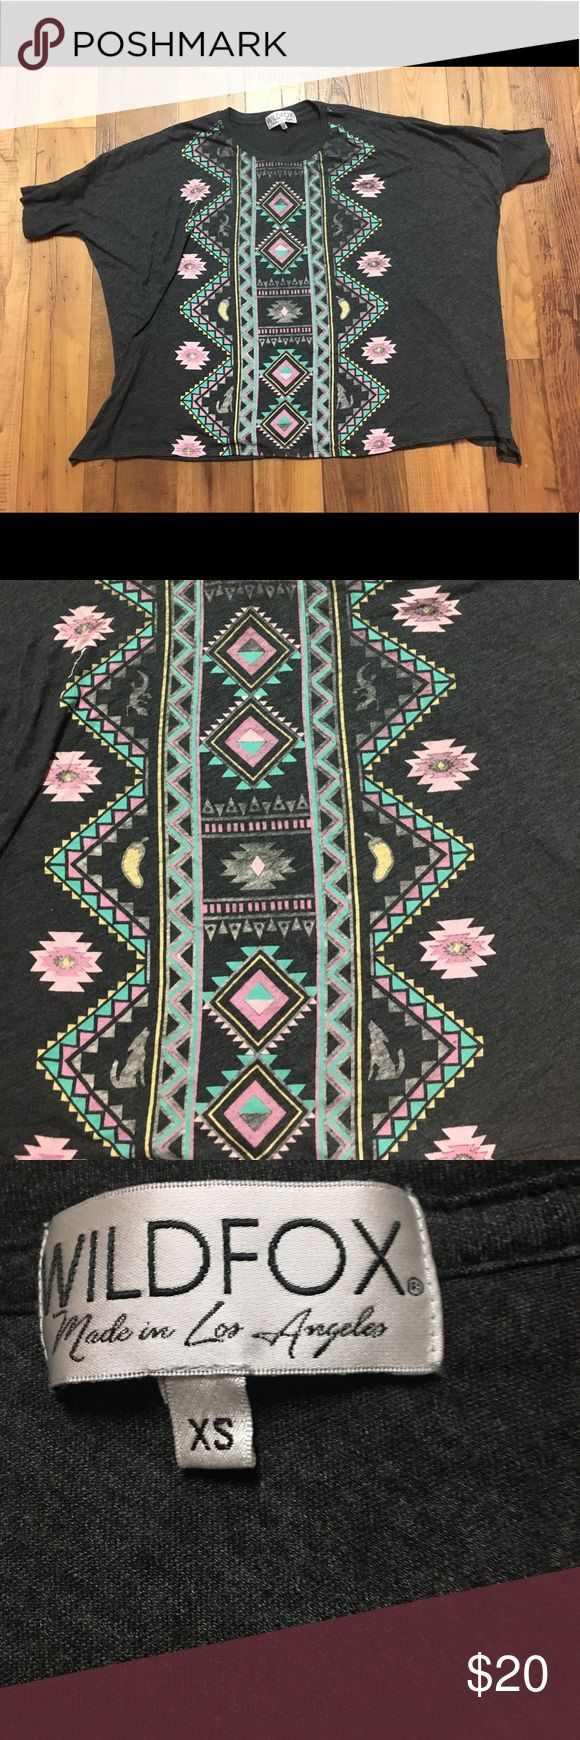 {Wildfox} Grey Slouchy Aztec Tee Size XS, but can fit S. super soft cotton, EUC! Has slots on the side, as pictured in last photo! Wildfox Tops Tees - Short Sleeve